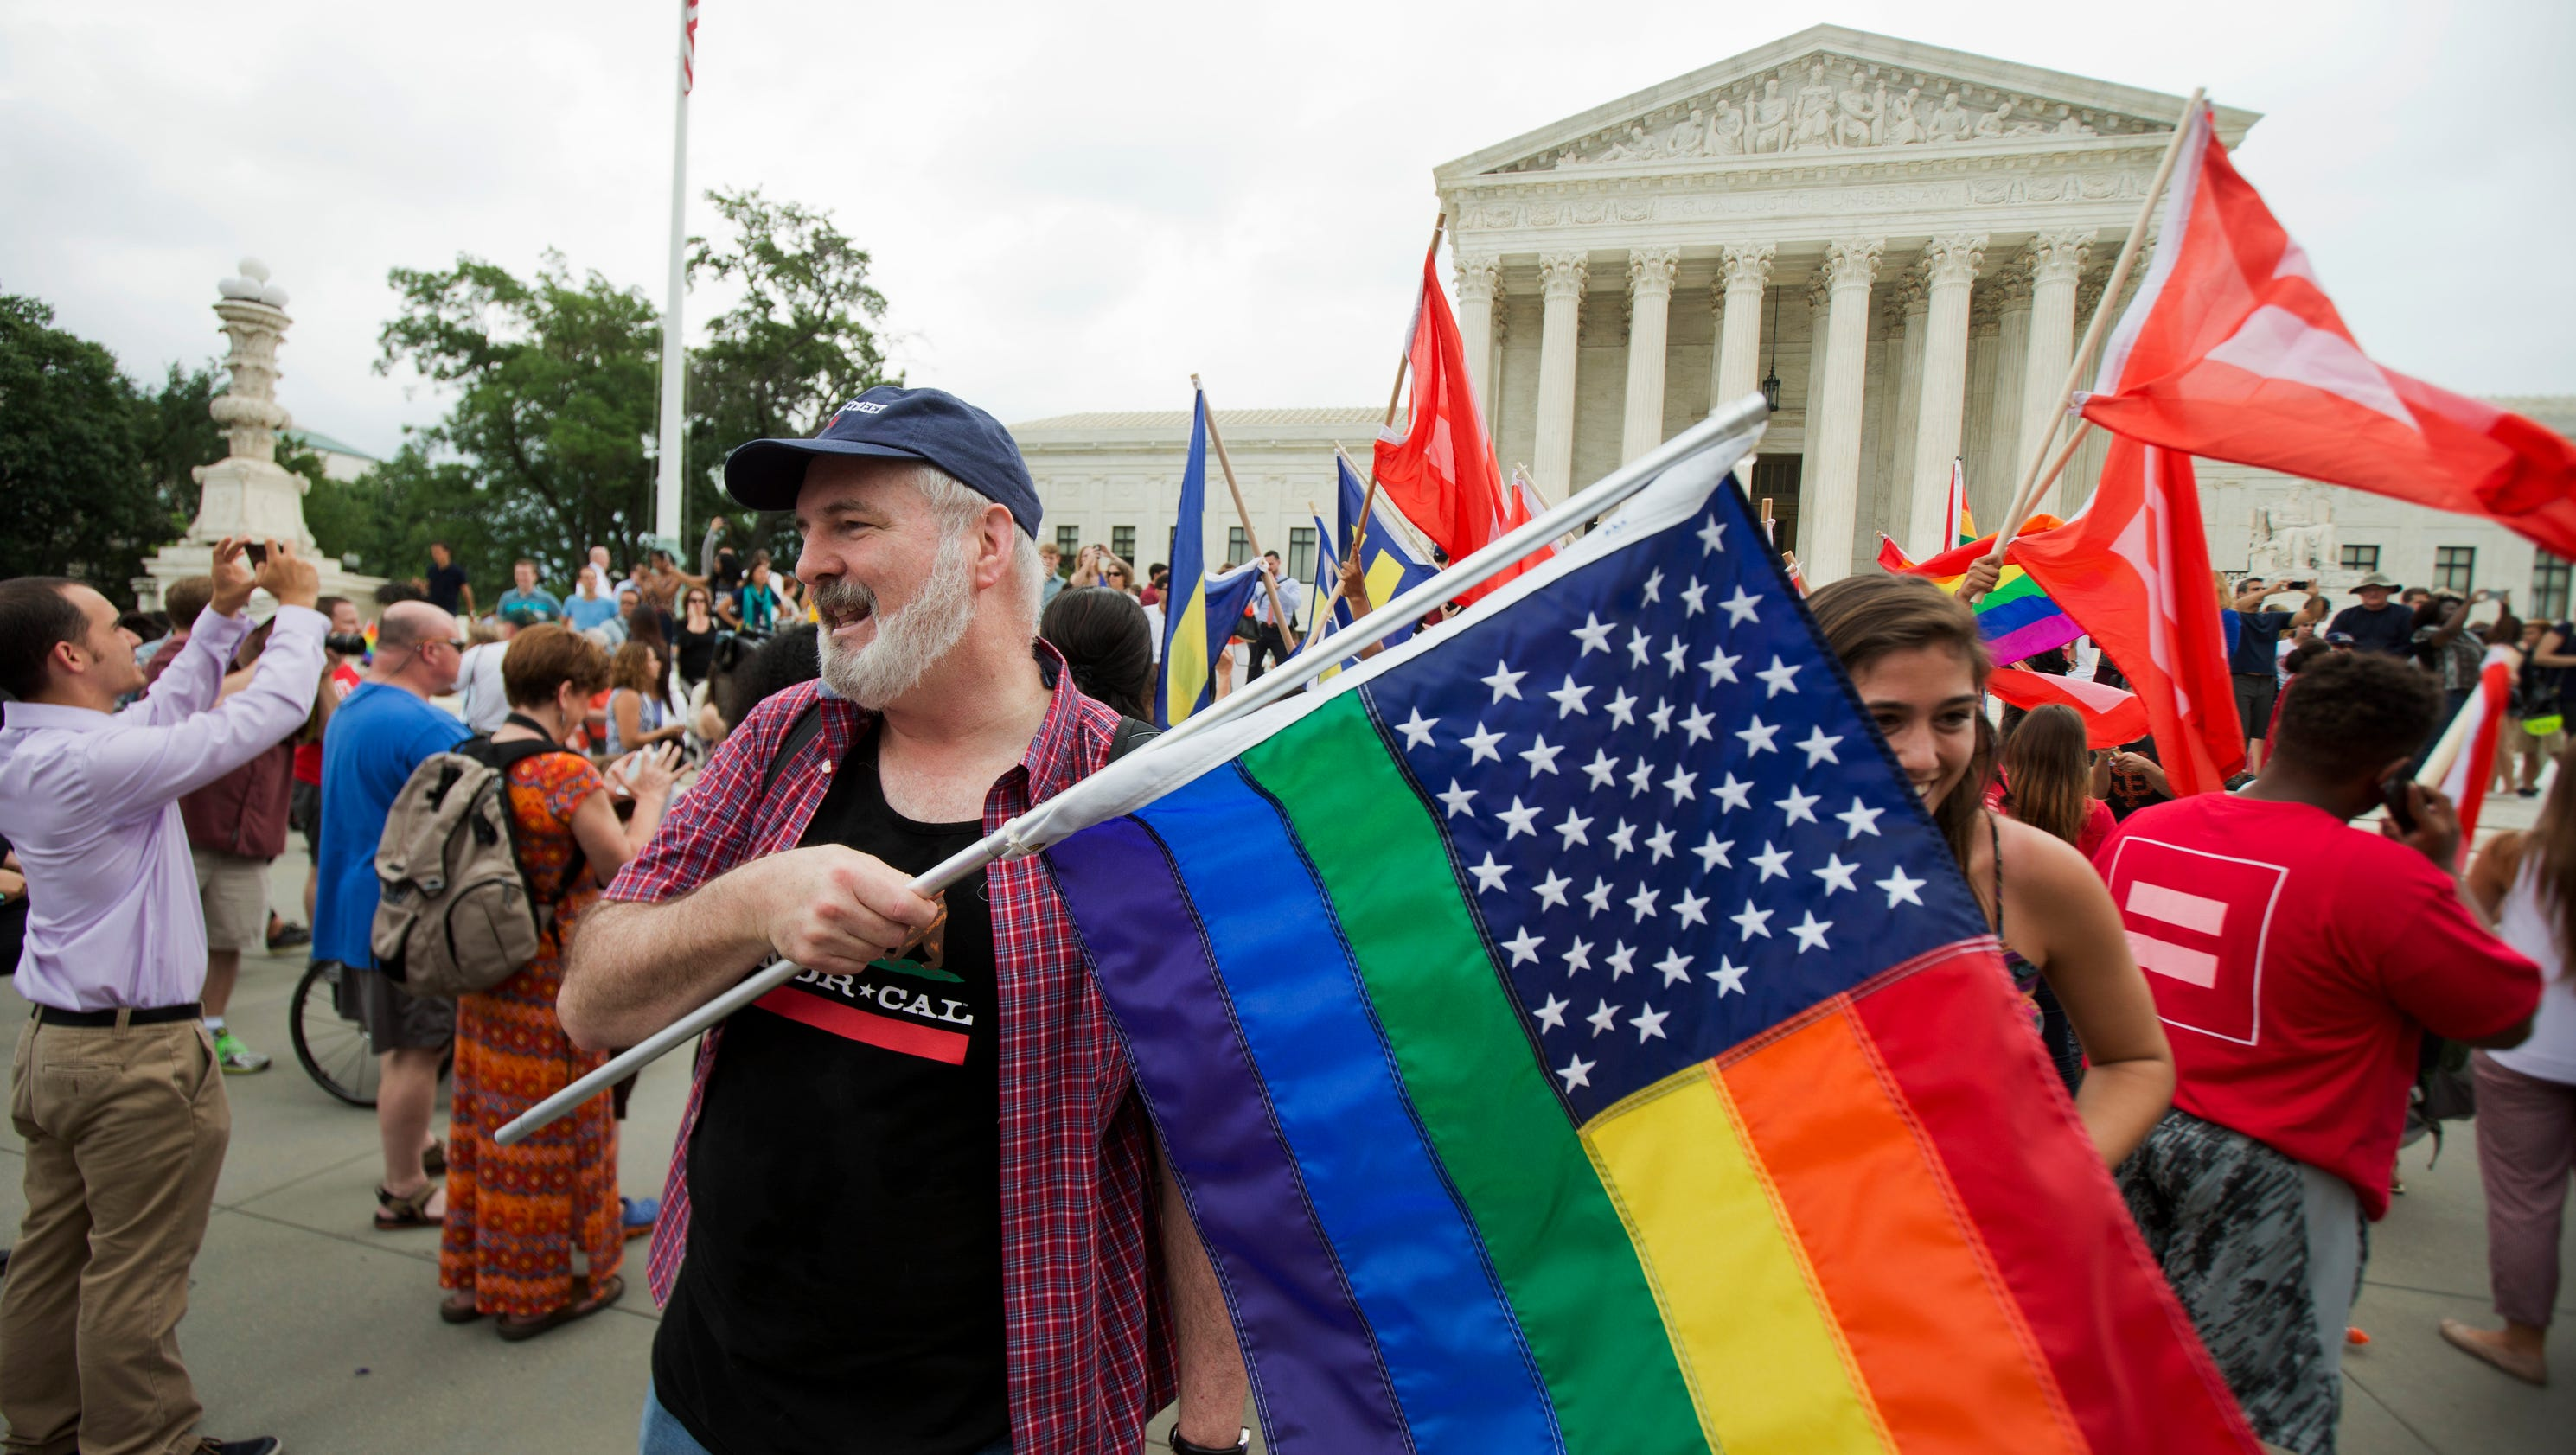 s historic Supreme Court ruling legalizing gay marriage in Washington